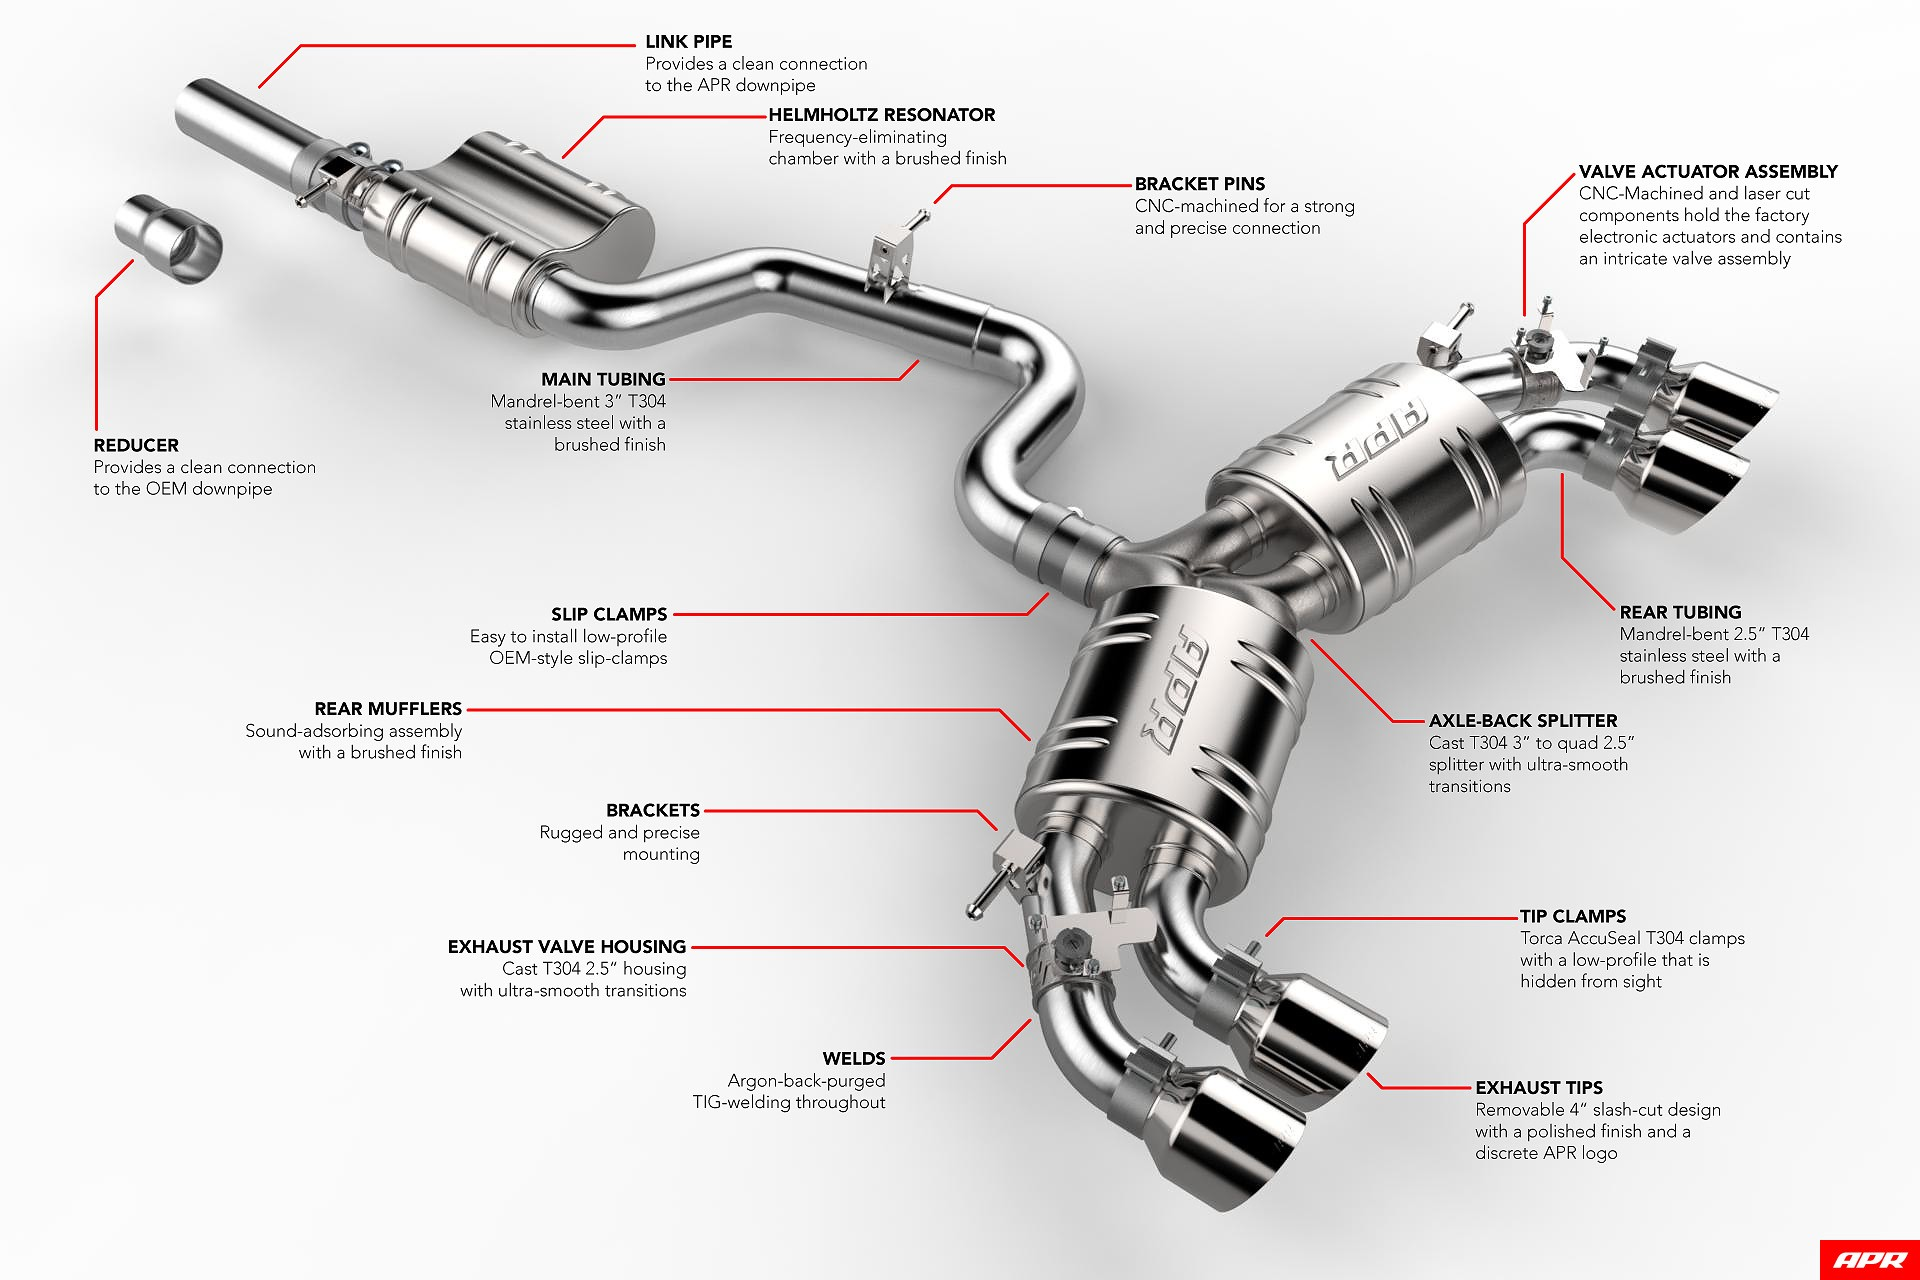 Diagram Of Exhaust System Of Car Apr Mk7 Mk7 5 Golf R Catback Exhaust Systems Of Diagram Of Exhaust System Of Car